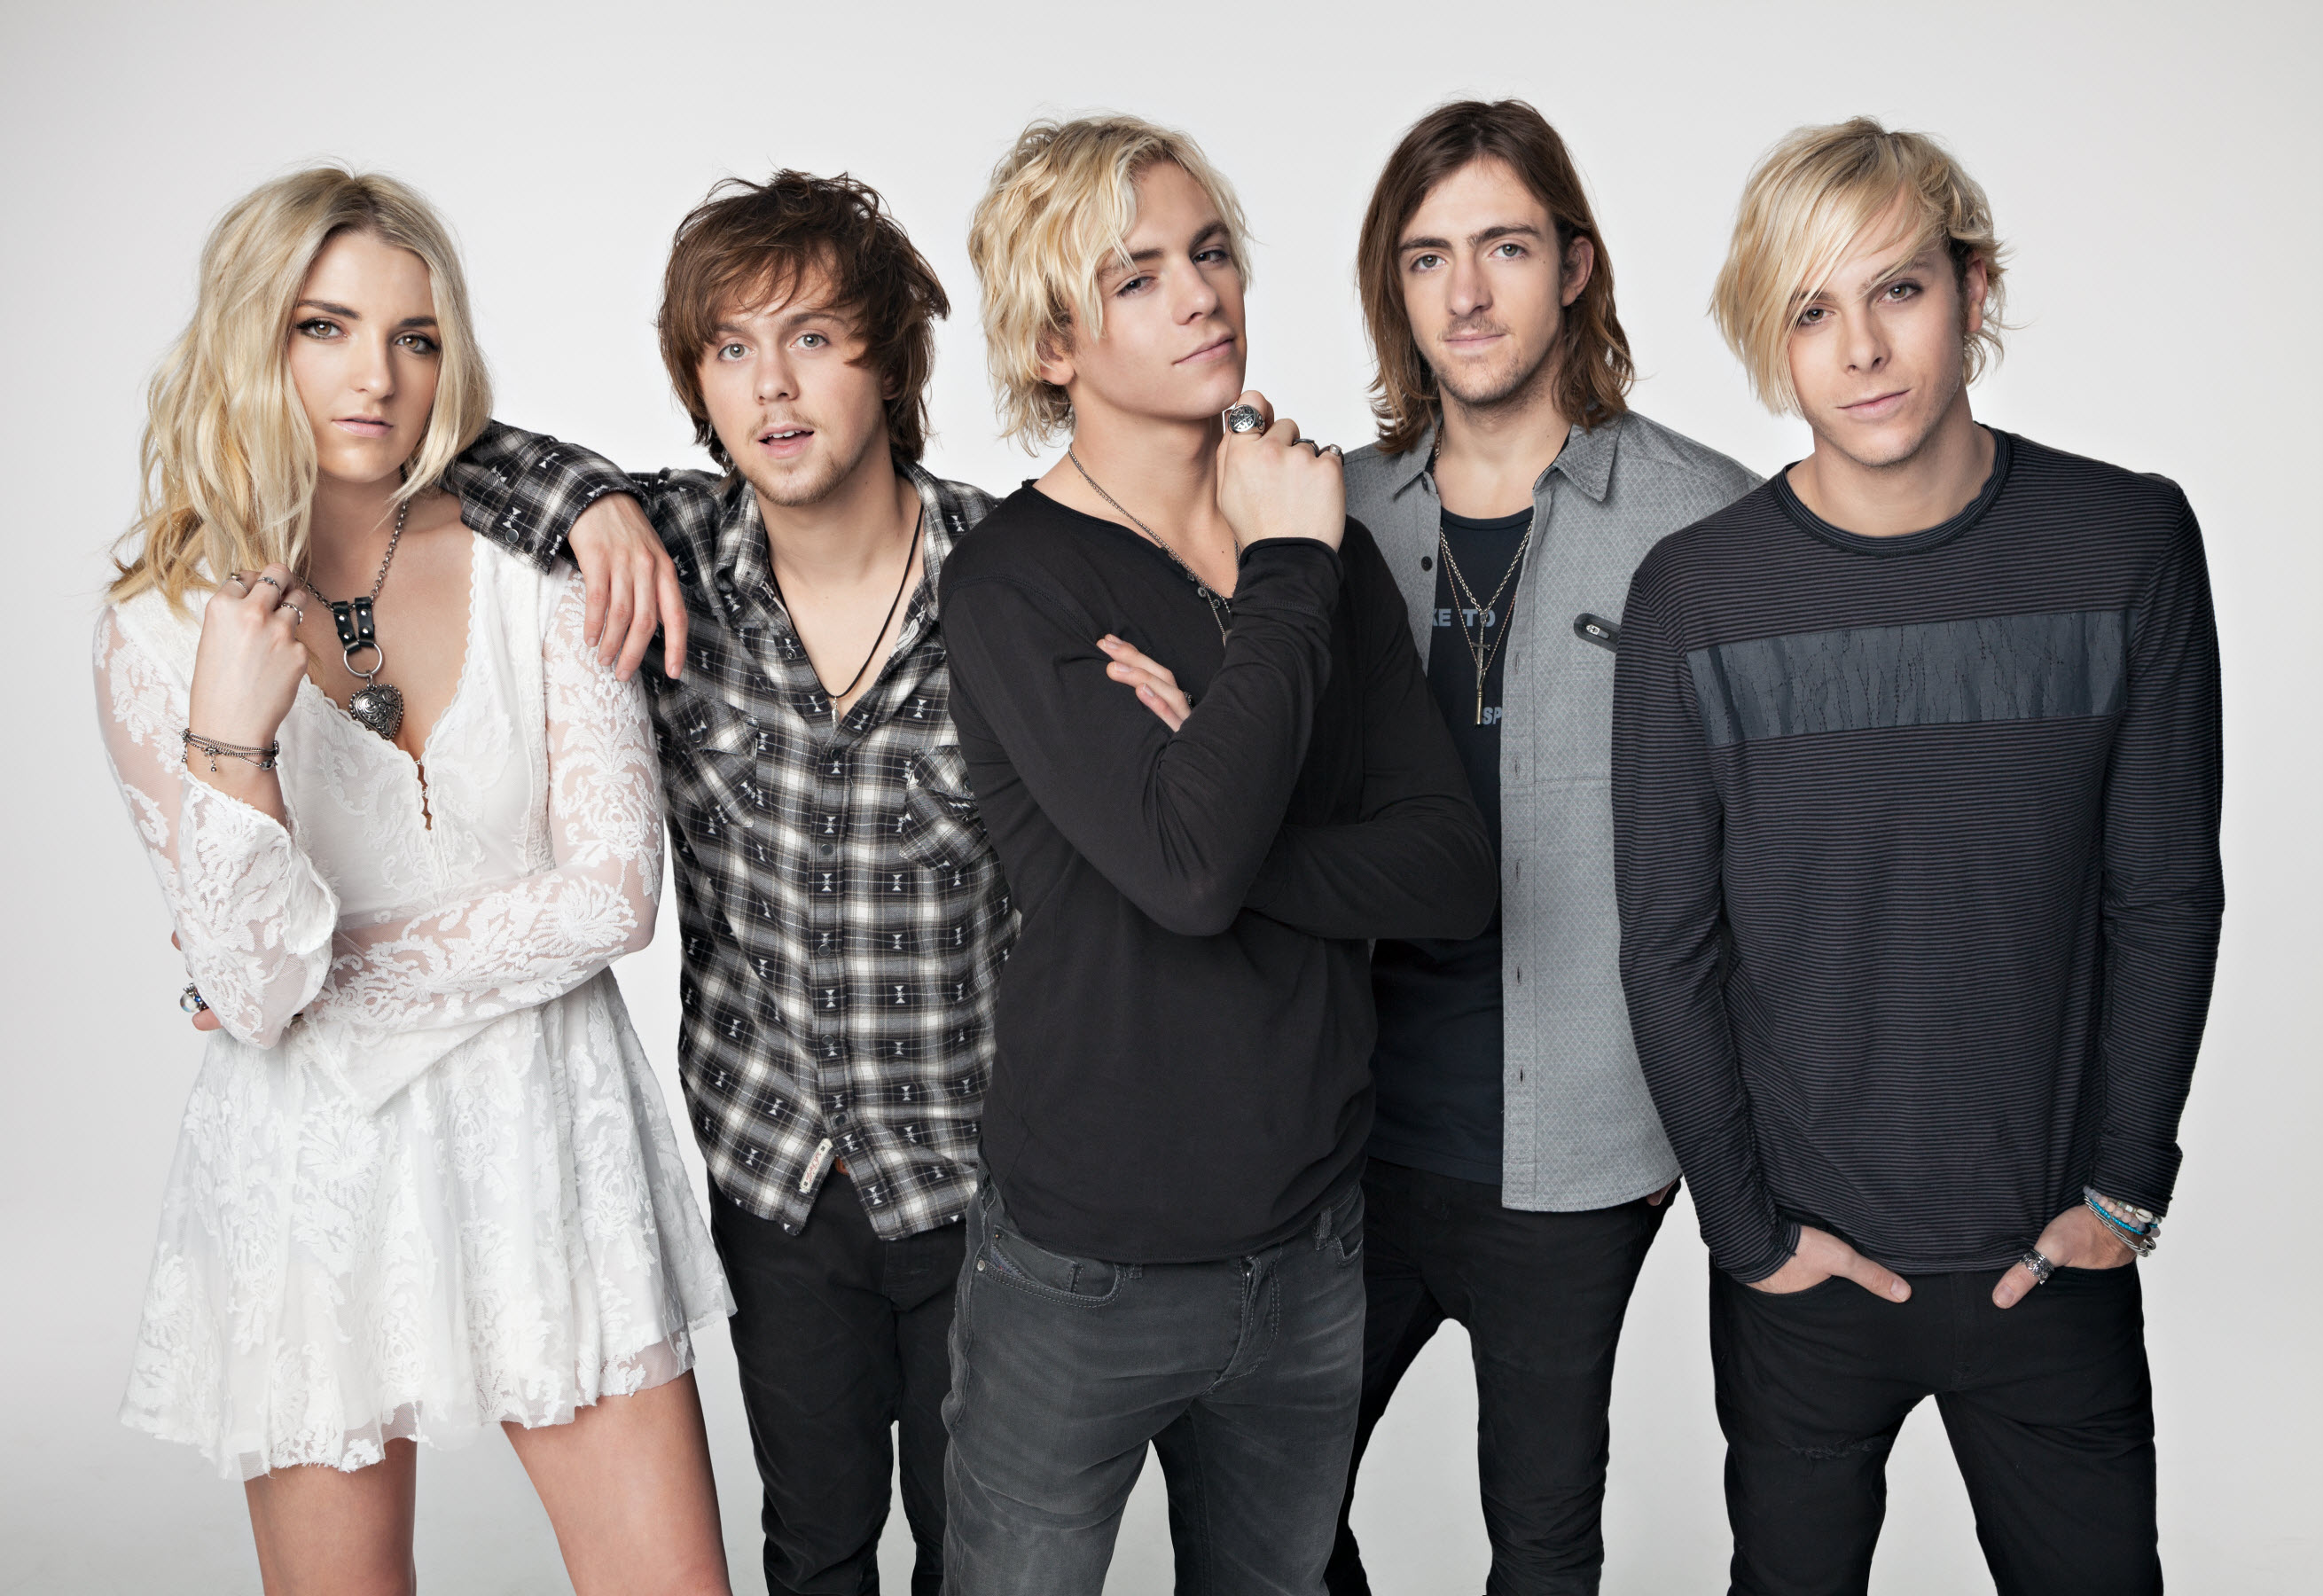 R5 release dates